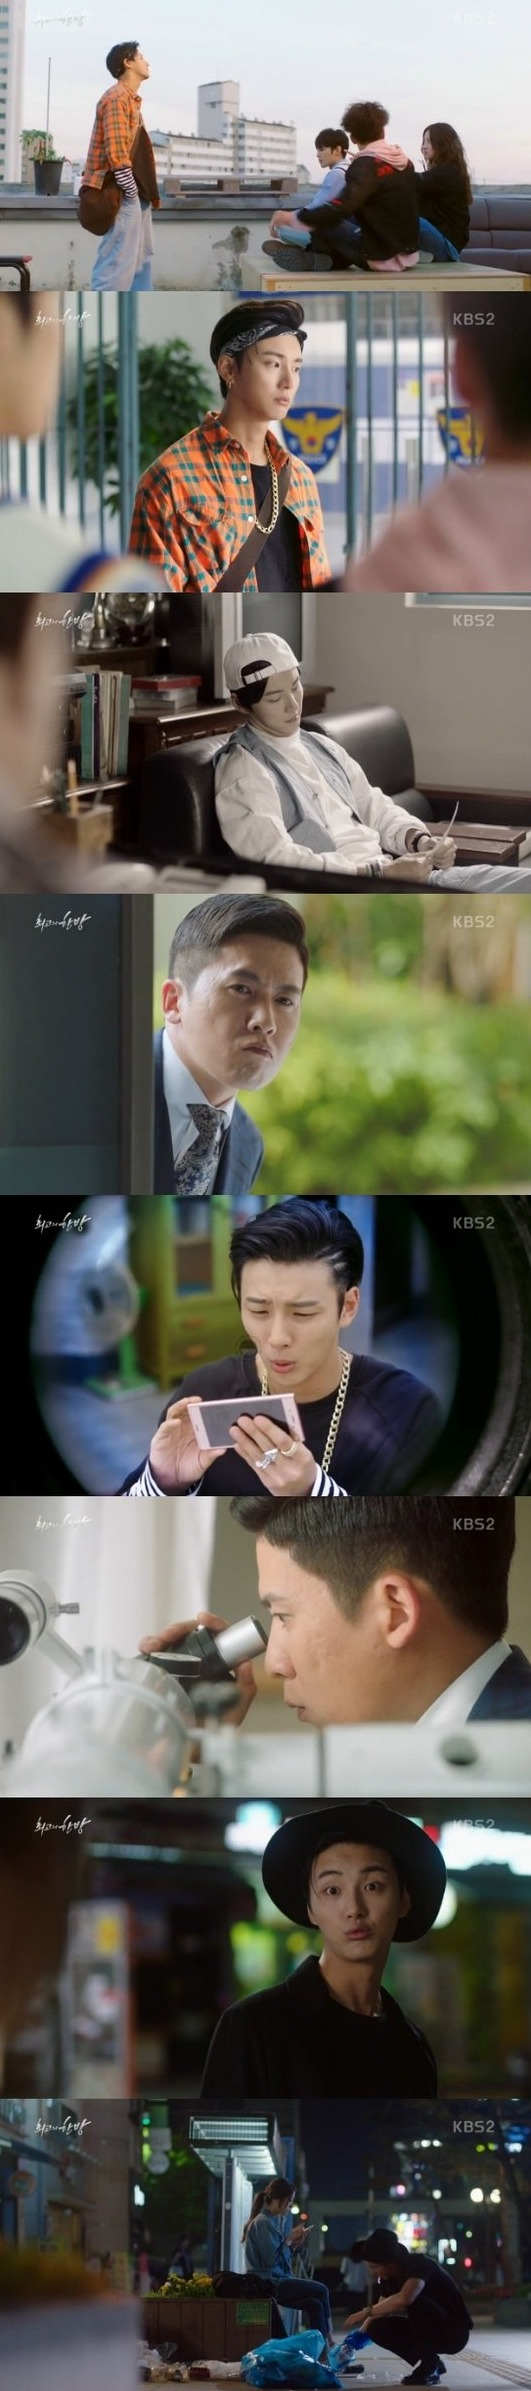 [Spoiler] Added episodes 5 to 8 captures for the Korean drama 'The Best Hit'